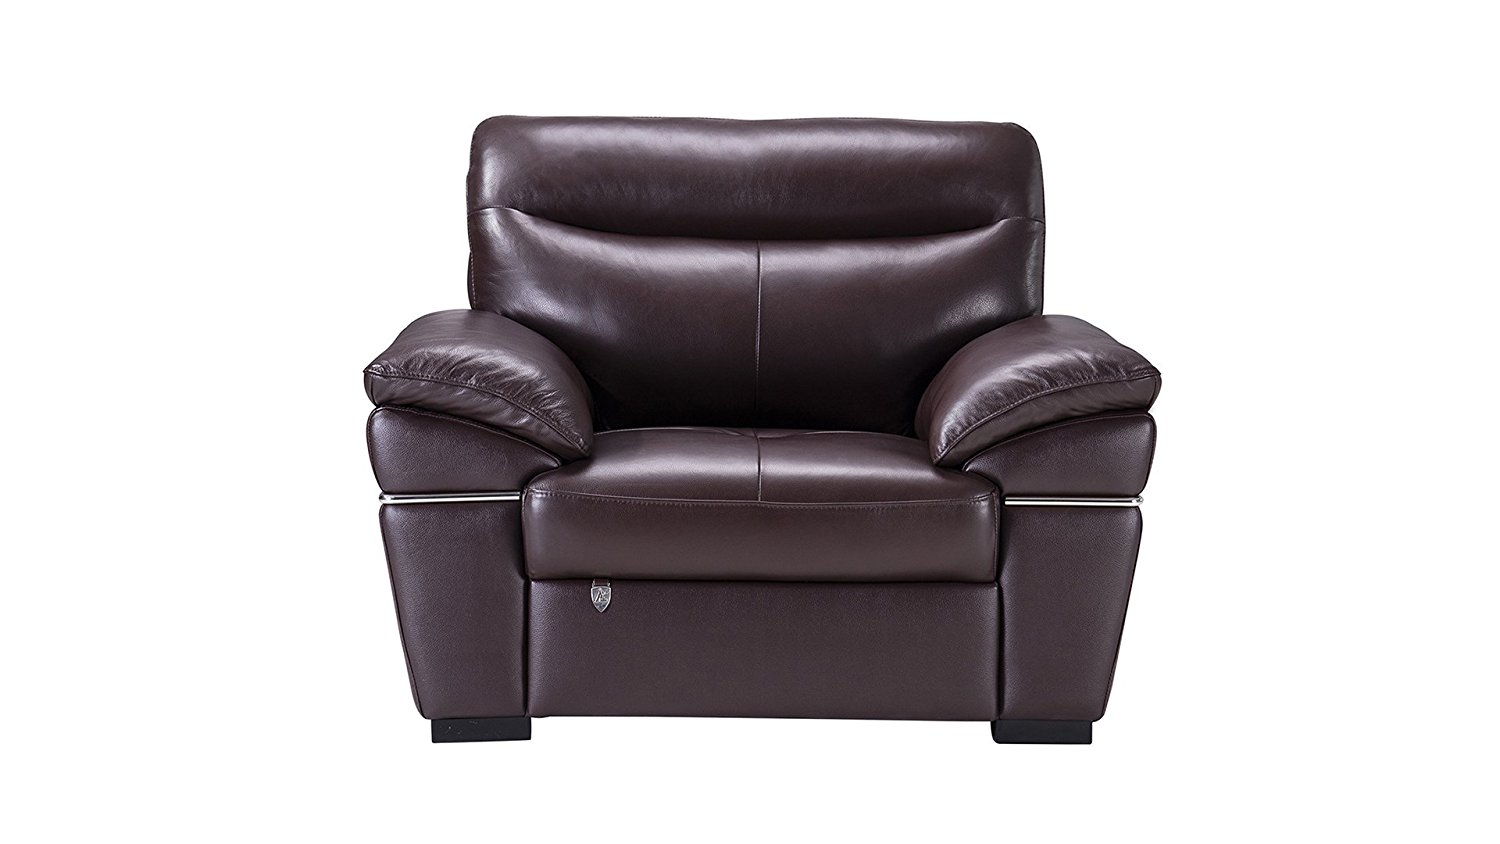 American Eagle Furniture Morris Collection Italian Leather Living Room Sofa Chair with Stainless Steel Trim, Dark Brown